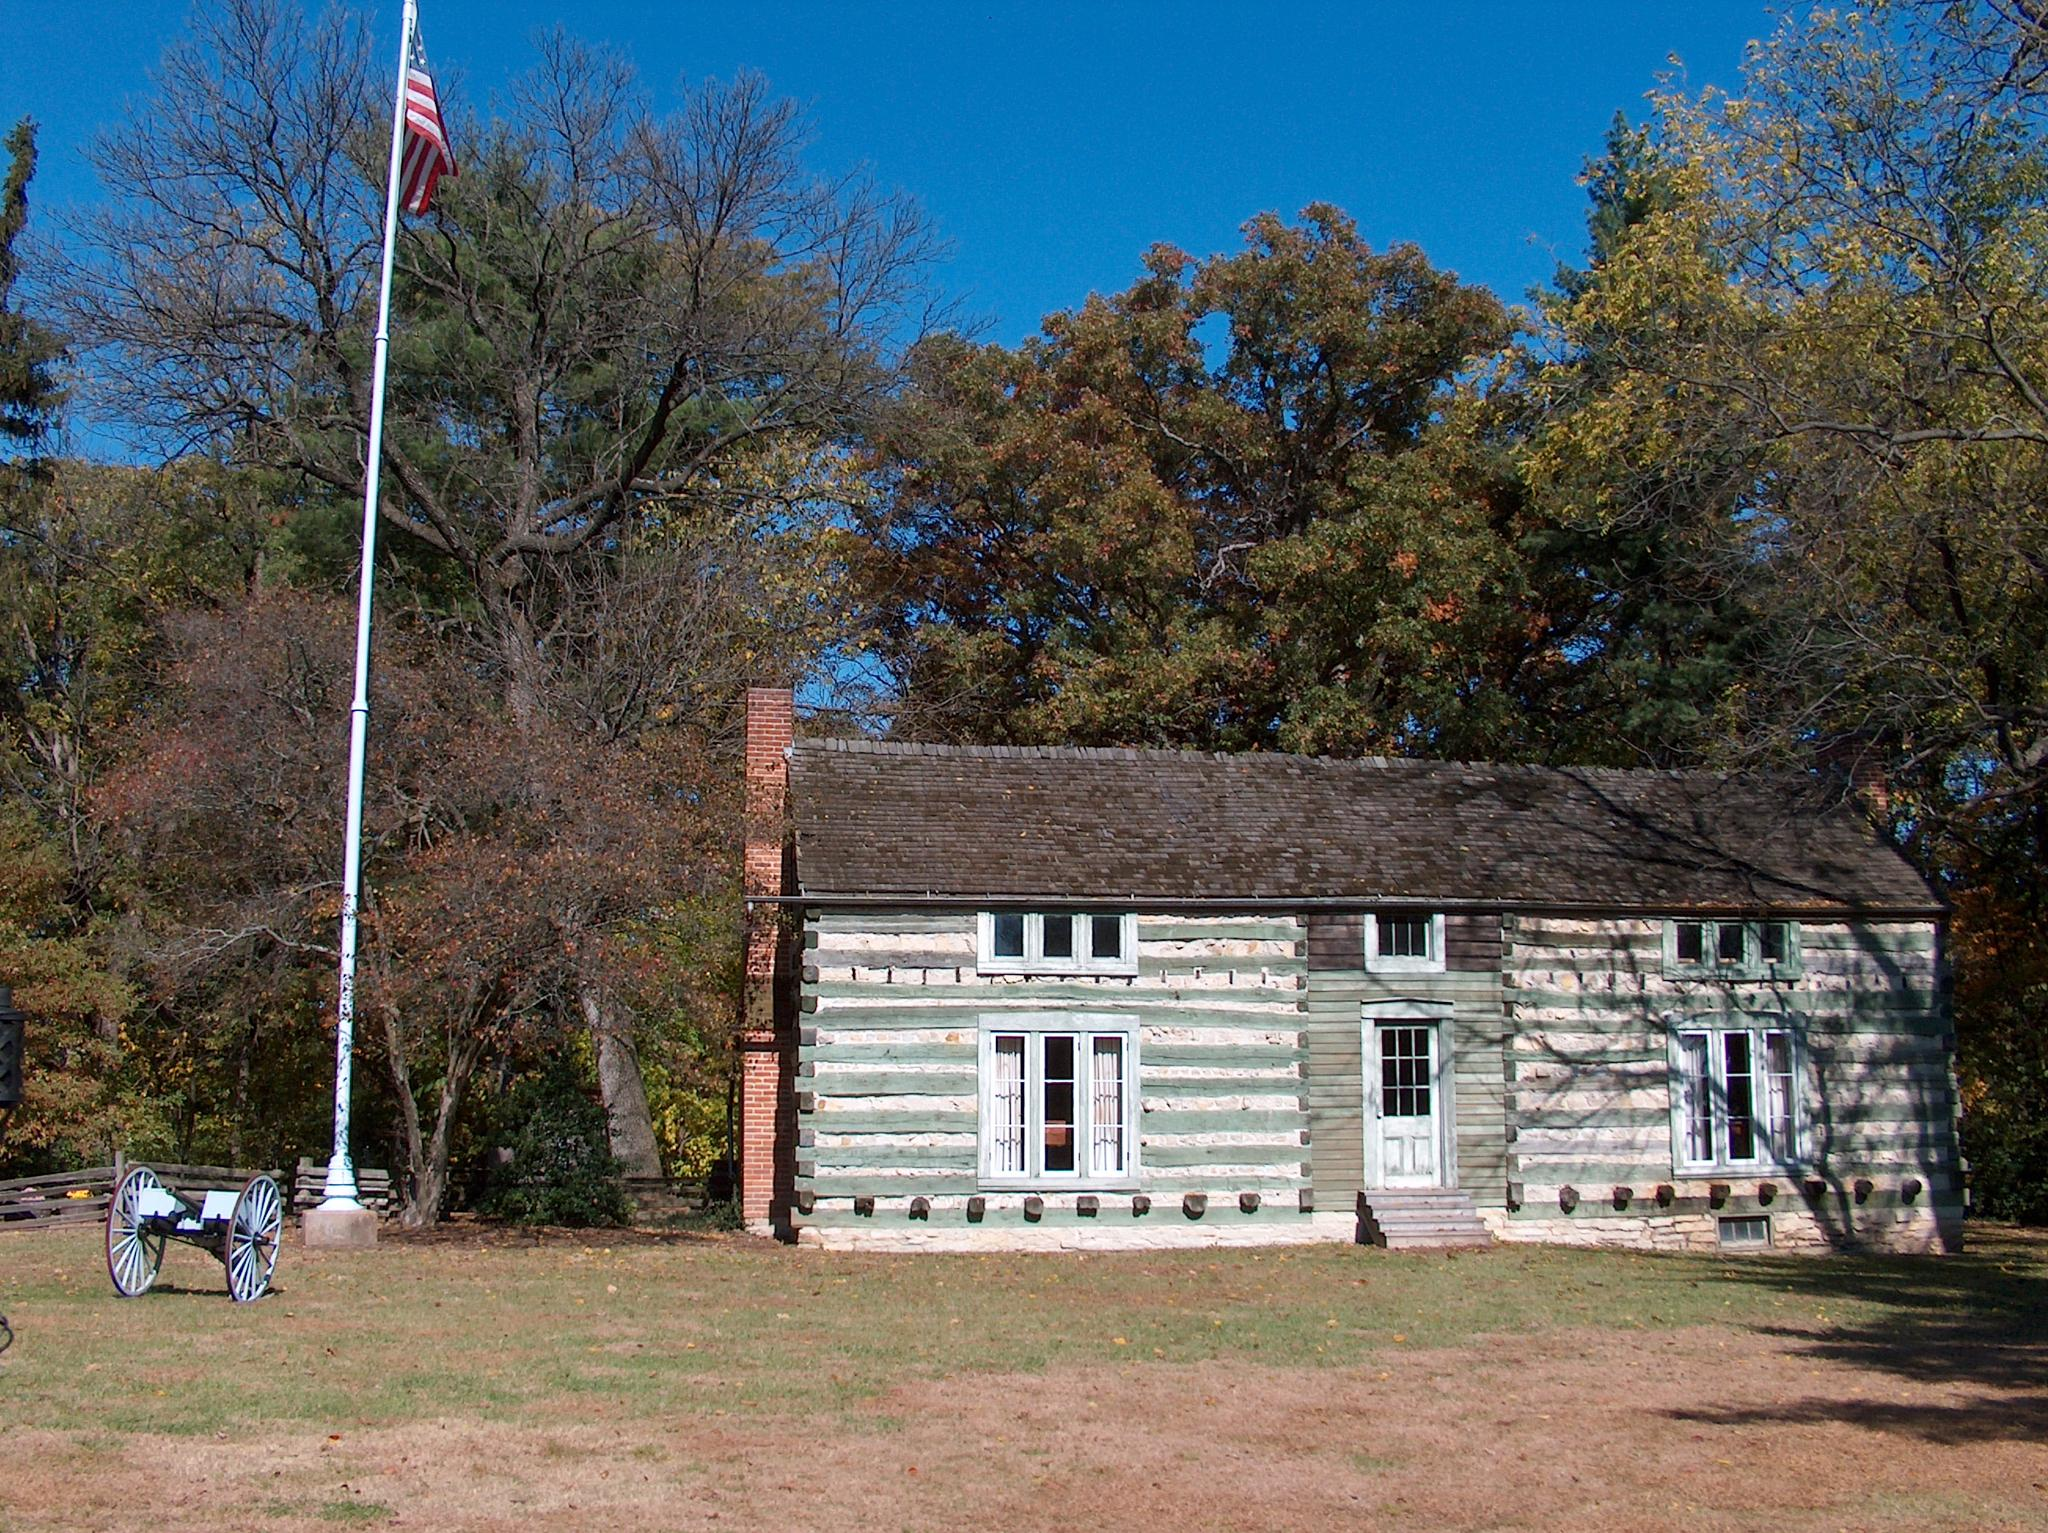 President (General) U.S.Grant's cabin, built it himself by Dave.Wanner.DWP